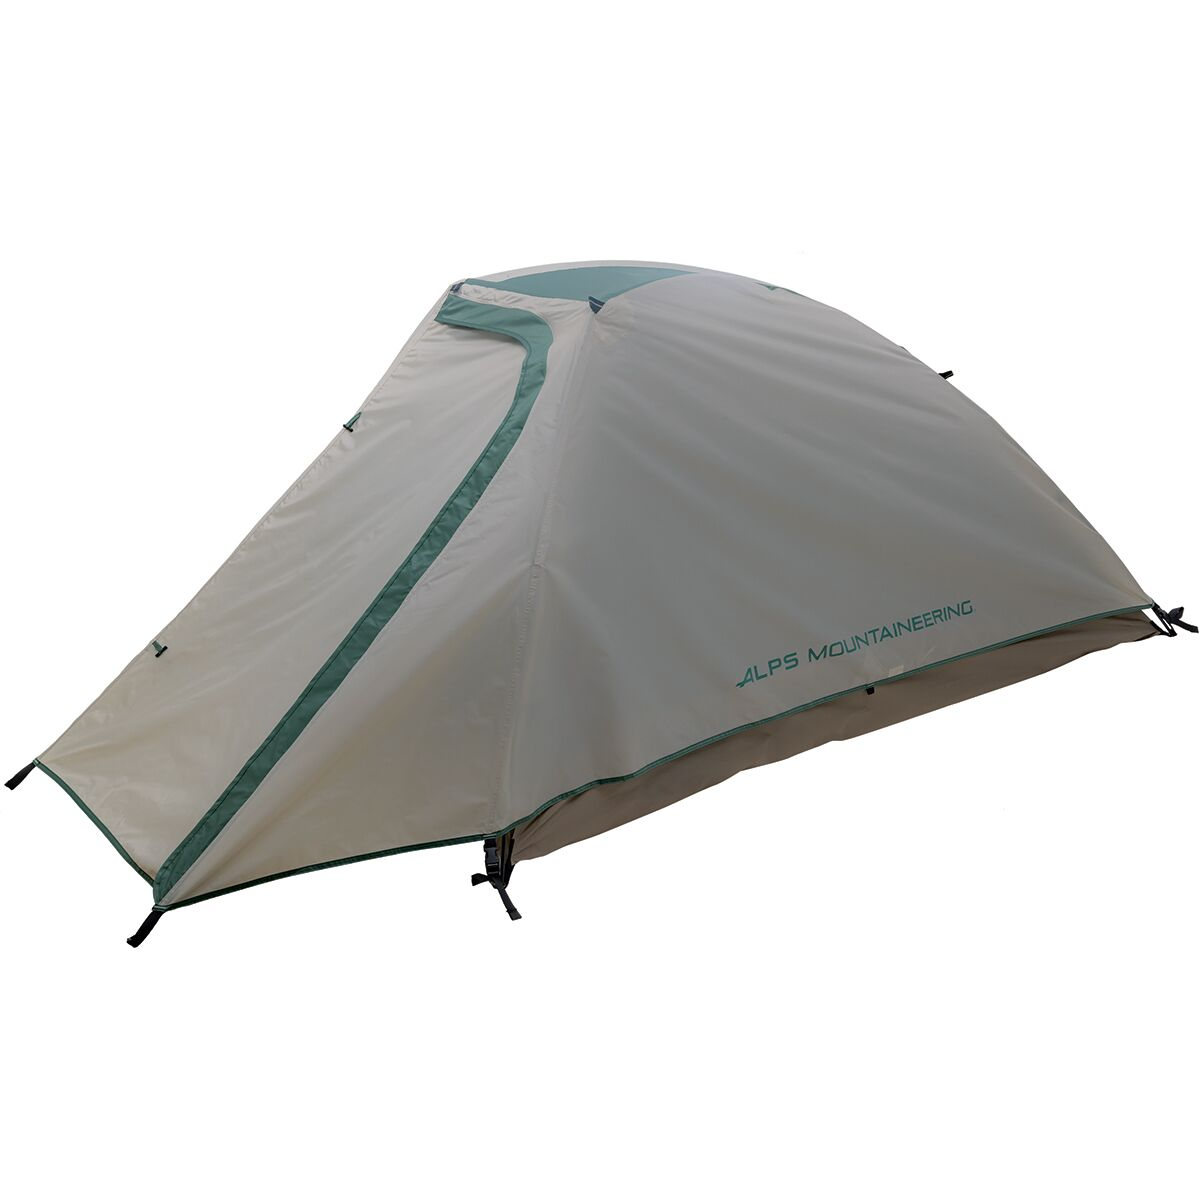 ALPS Mountaineering Zephyr 1